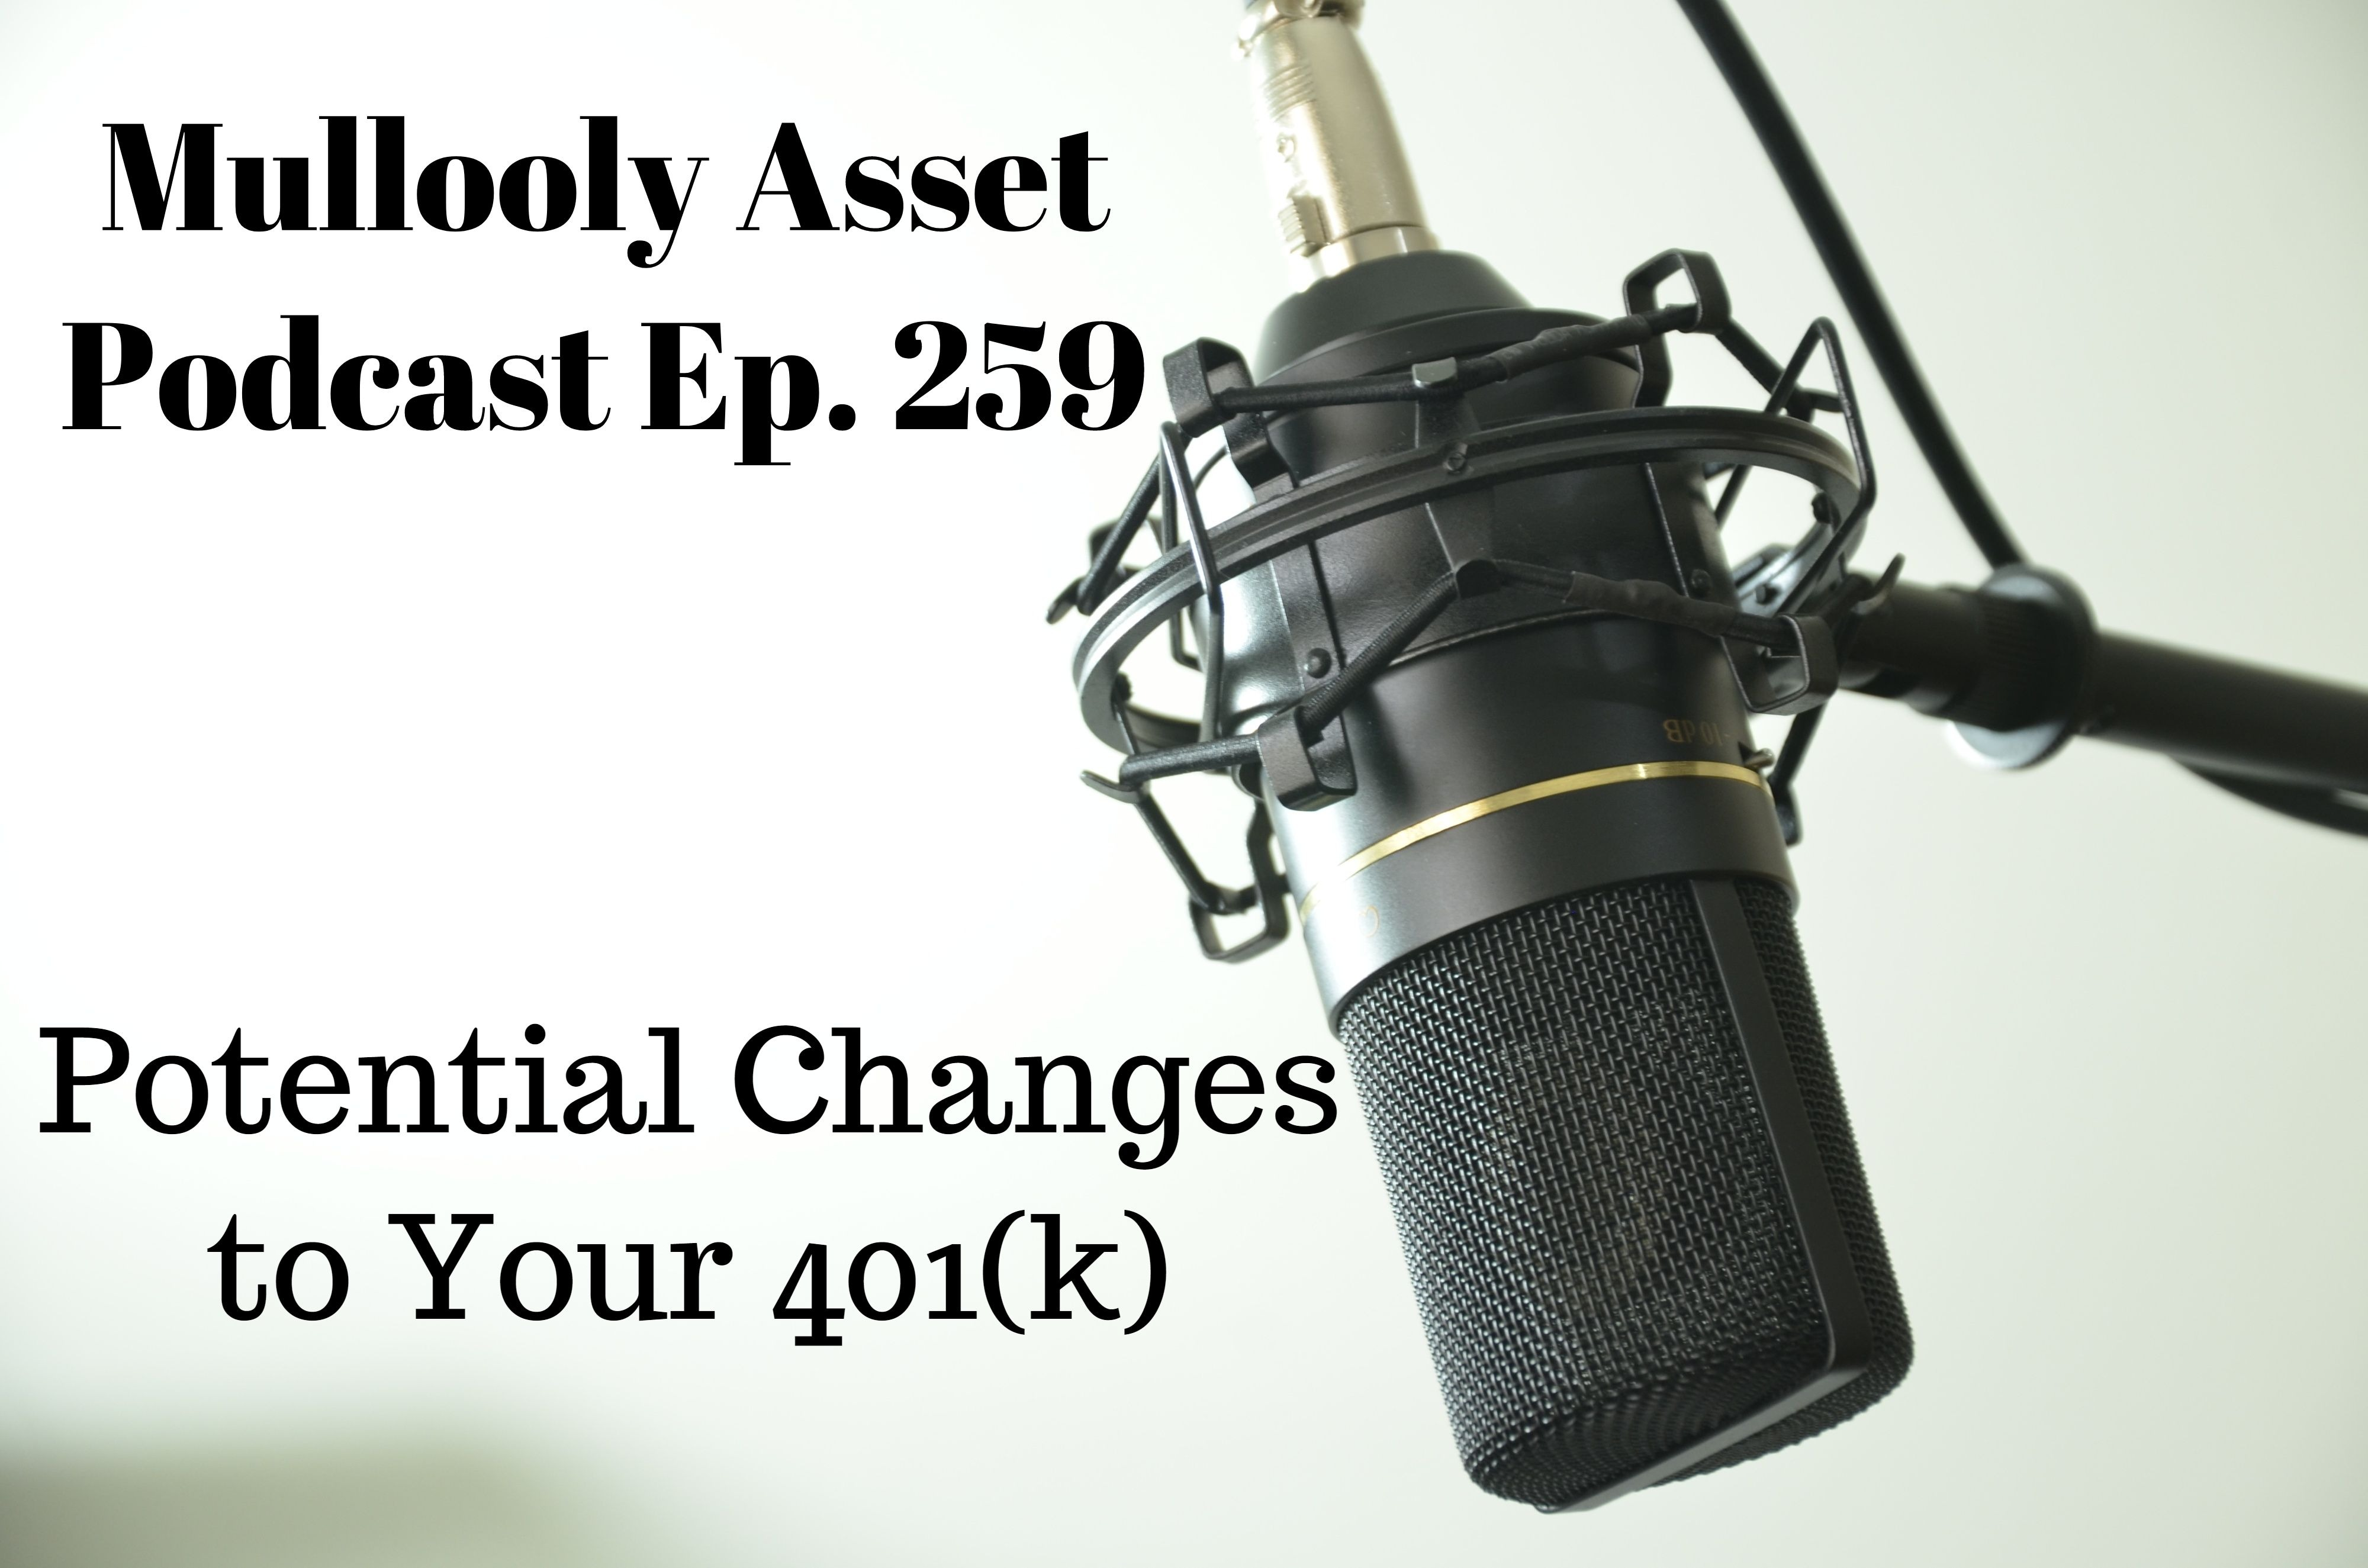 Potential Changes to Your 401(k)